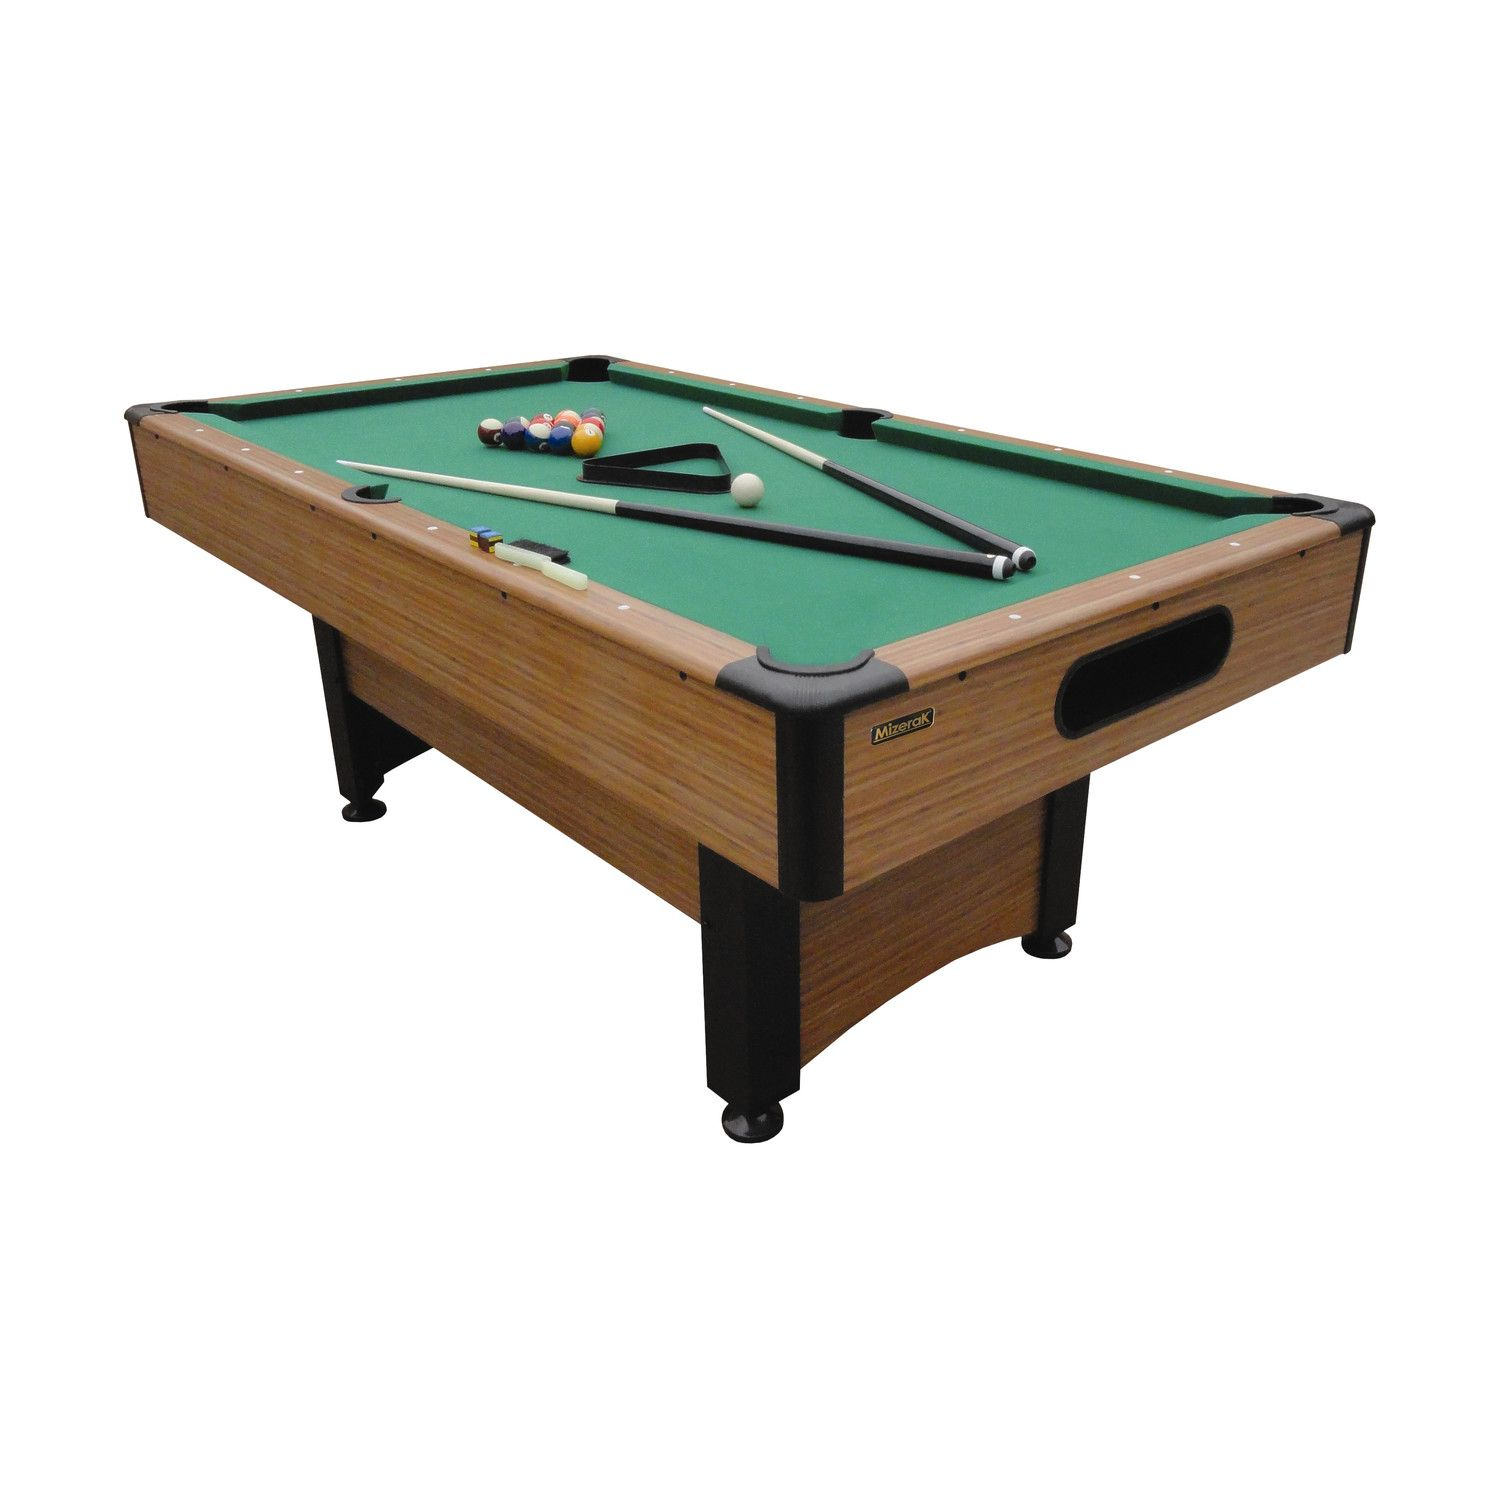 Image Result For Pool Tables Near Me Stuff To Buy Pinterest - Pool table accessories near me